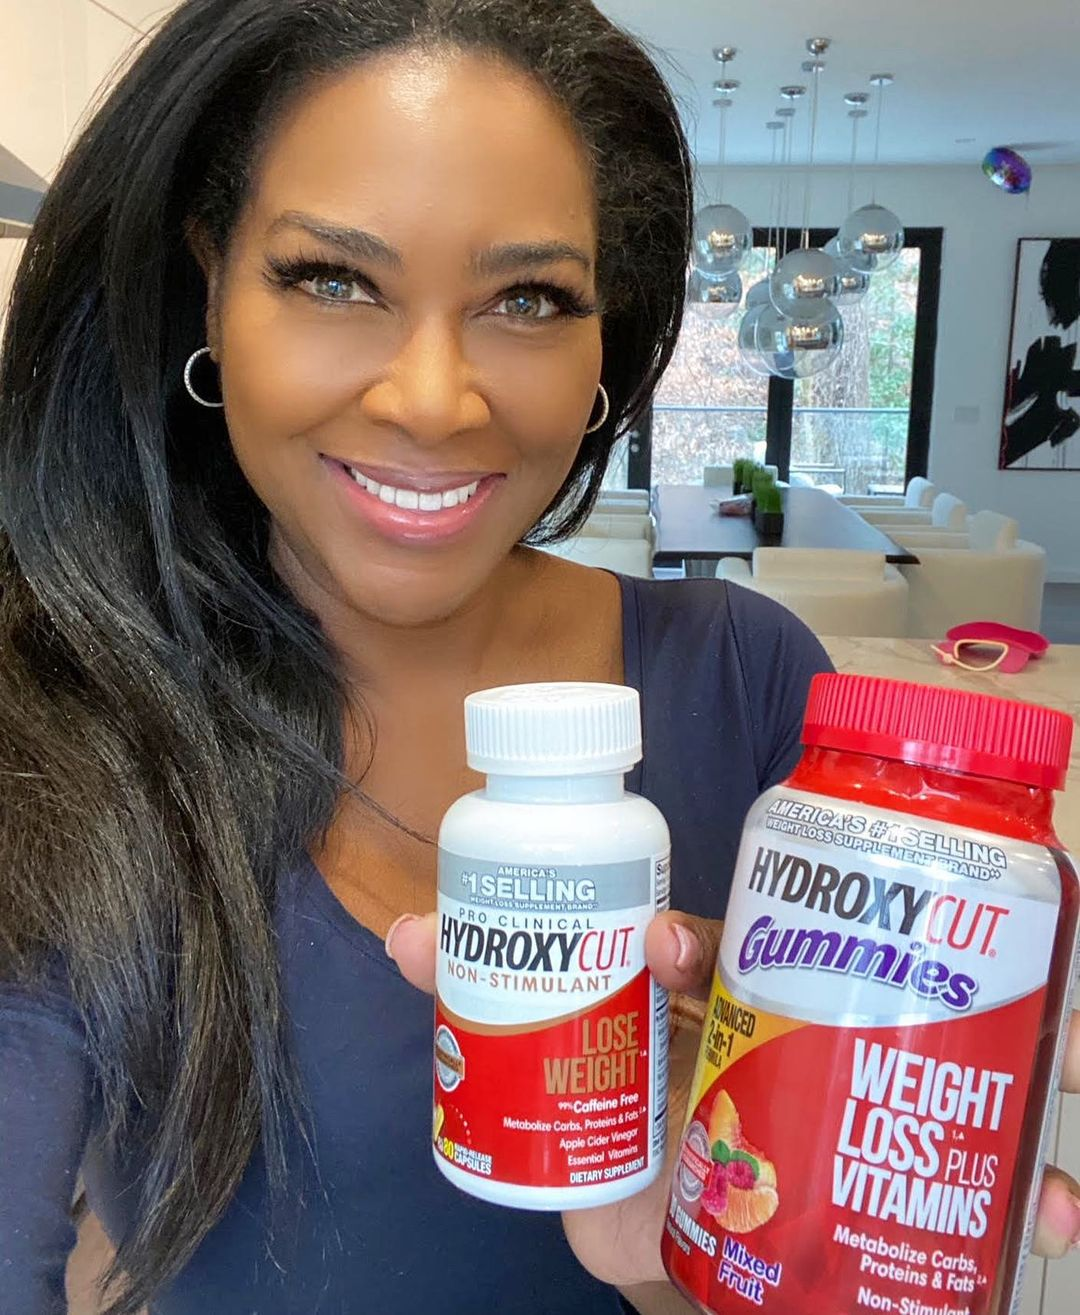 ACTOR and TV PERSONALITY KENYA MOORE PARTNERS WITH HYDROXYCUT FOR A 12-WEEK TRANSFORMATION